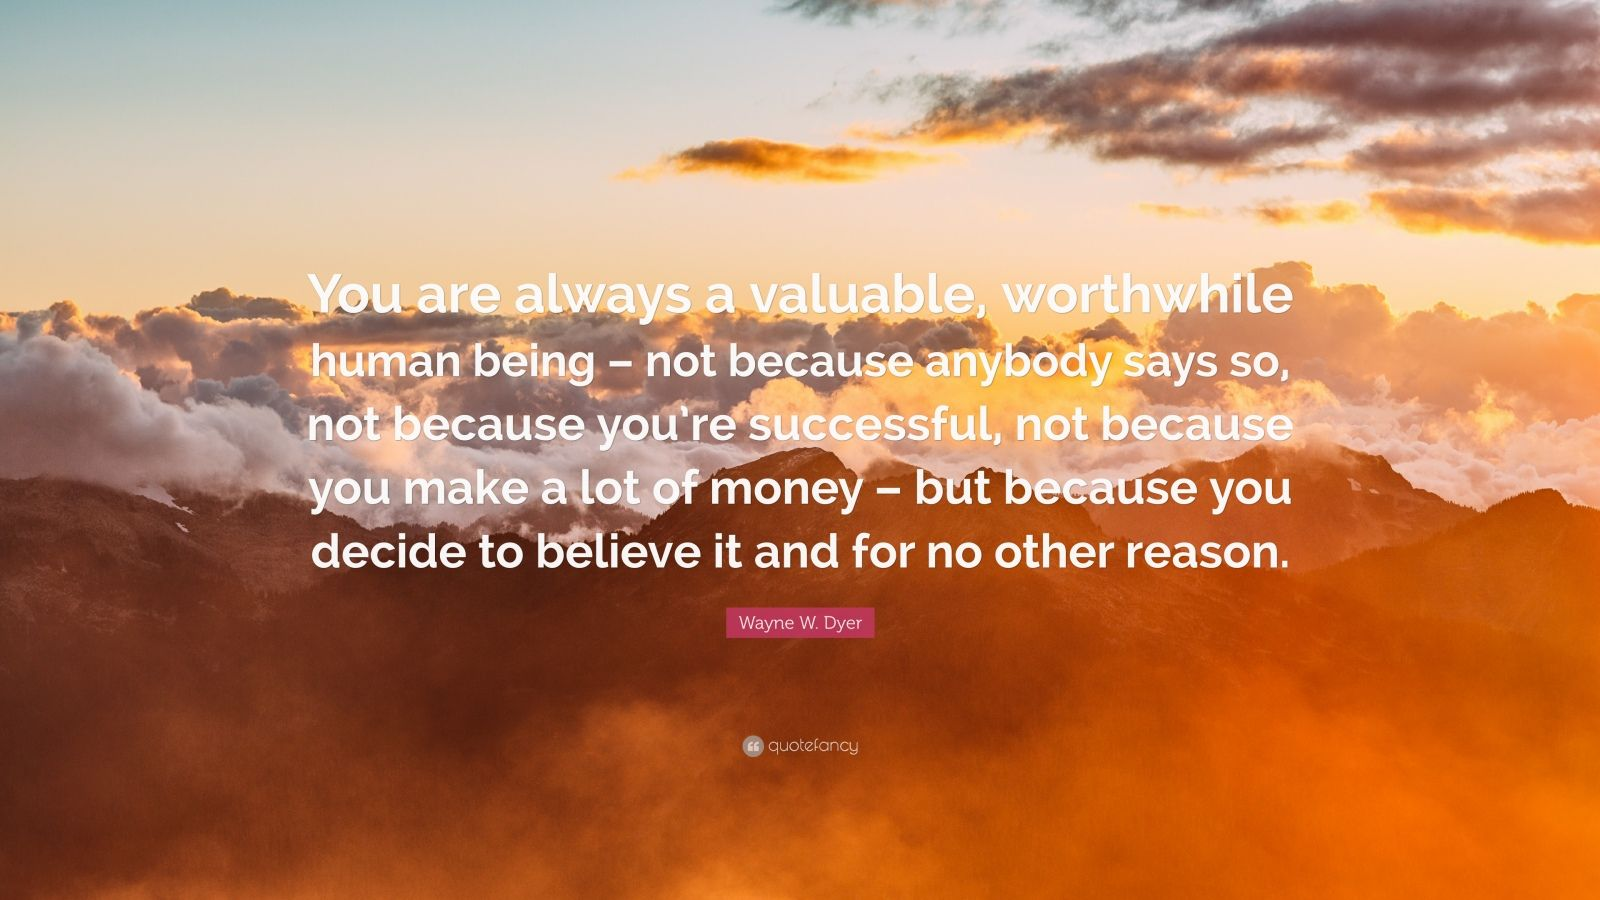 "Wayne W. Dyer Quote: ""You are always a valuable, worthwhile human being – not because anybody says so, not because you're successful, not because you make a lot of money – but because you decide to believe it and for no other reason."""